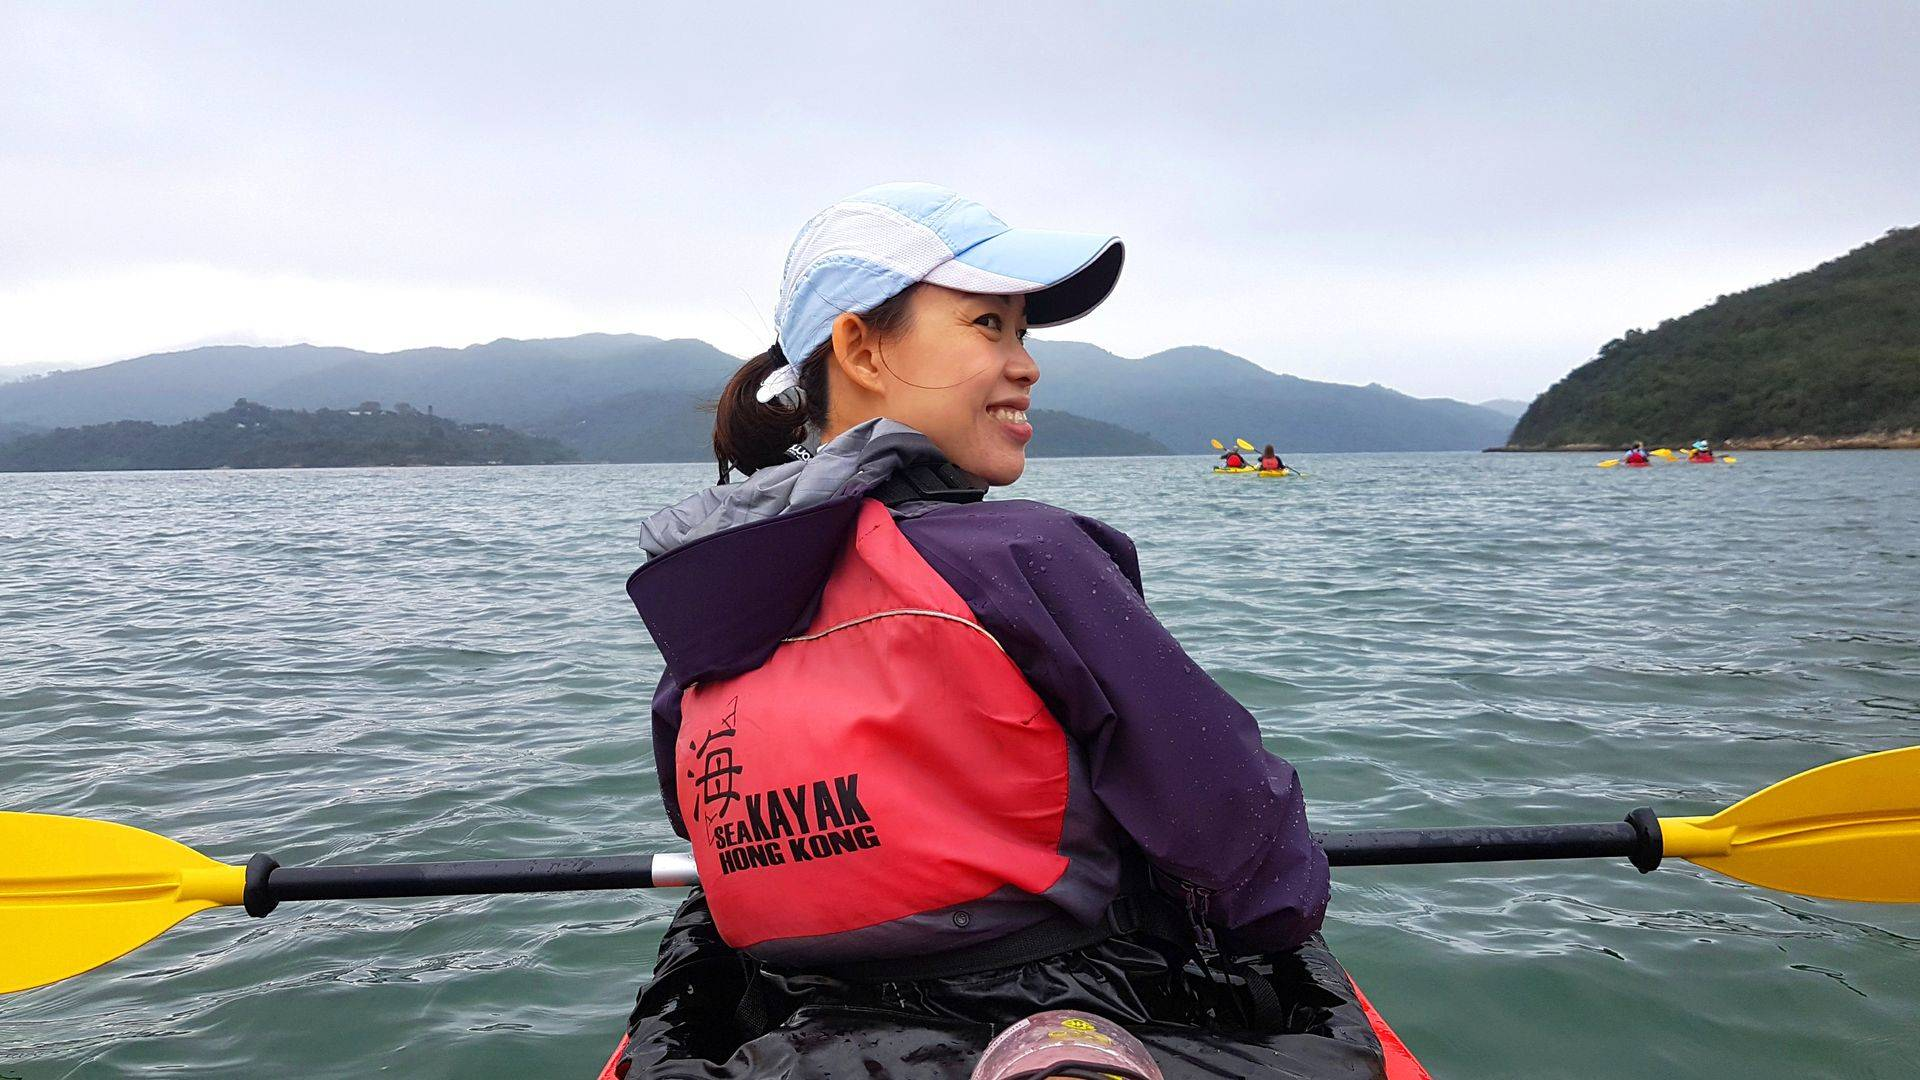 09 Feb 2019 Sea Kayak Hong Kong UNESCO 1 day 08